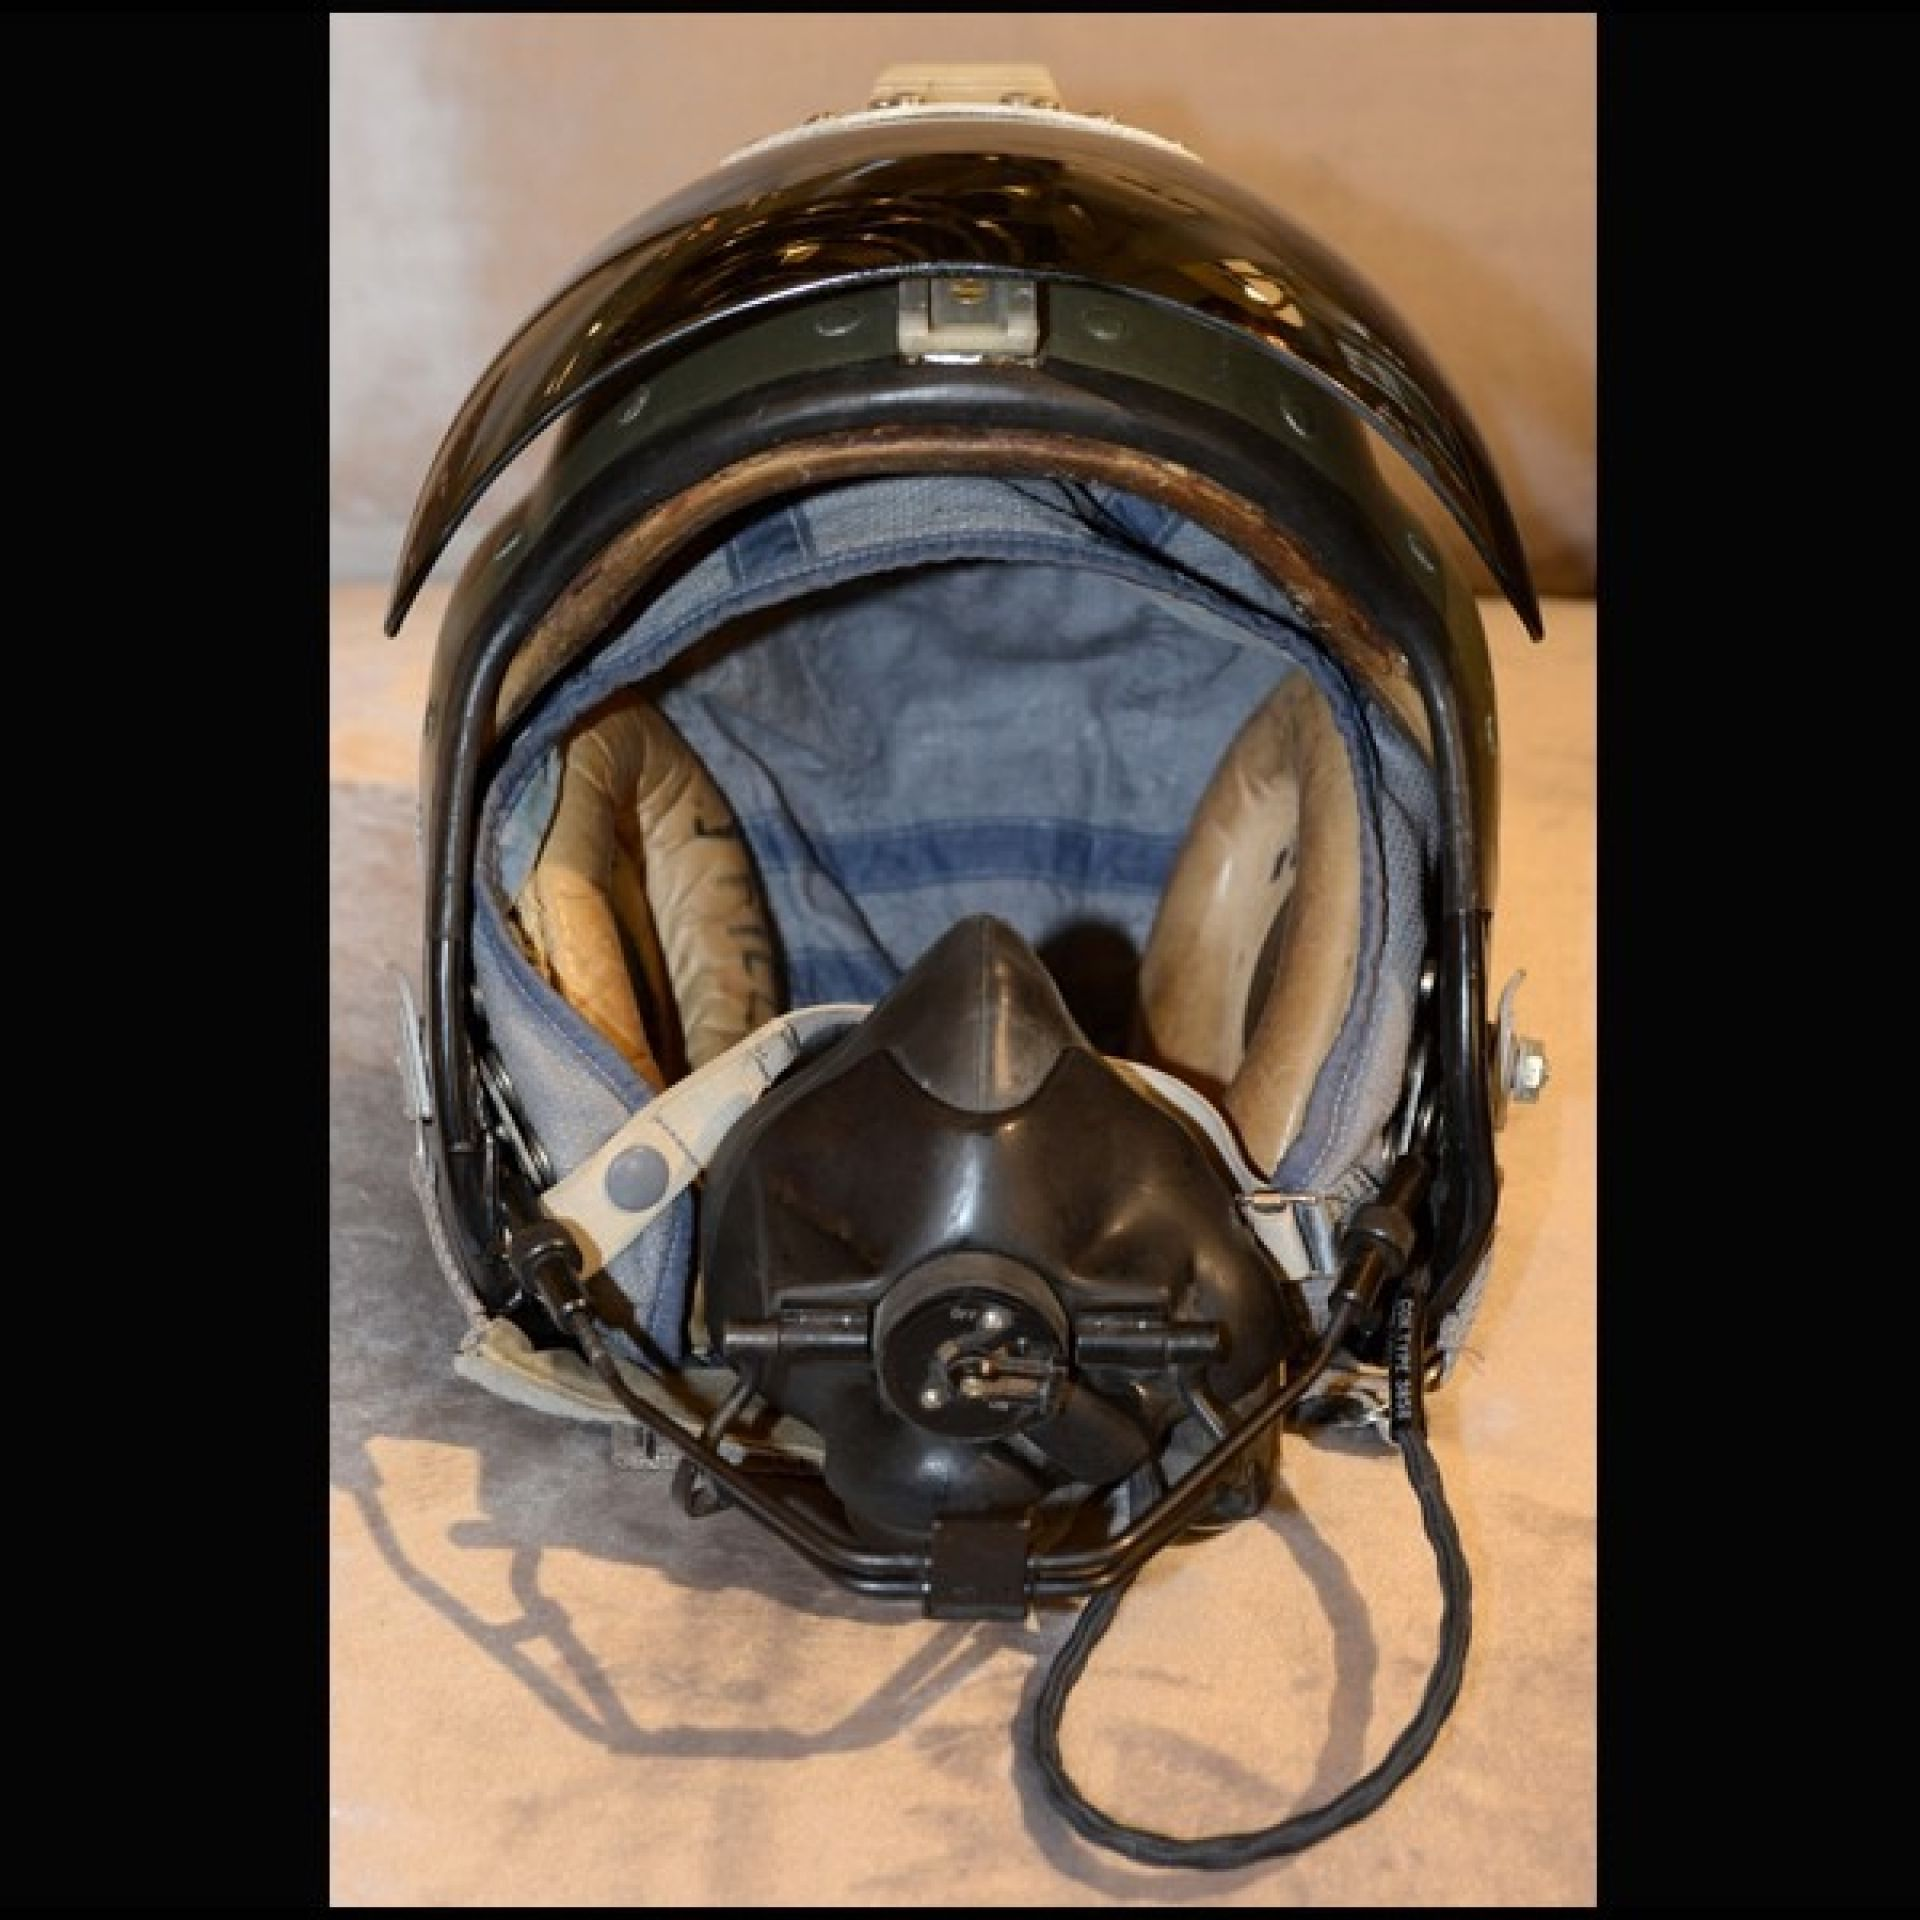 ROYAL AIR FORCE FIGHTER PLANE PILOT HELMET 1950 SINGLE PIECE PC-ROYAL AIR FORCE